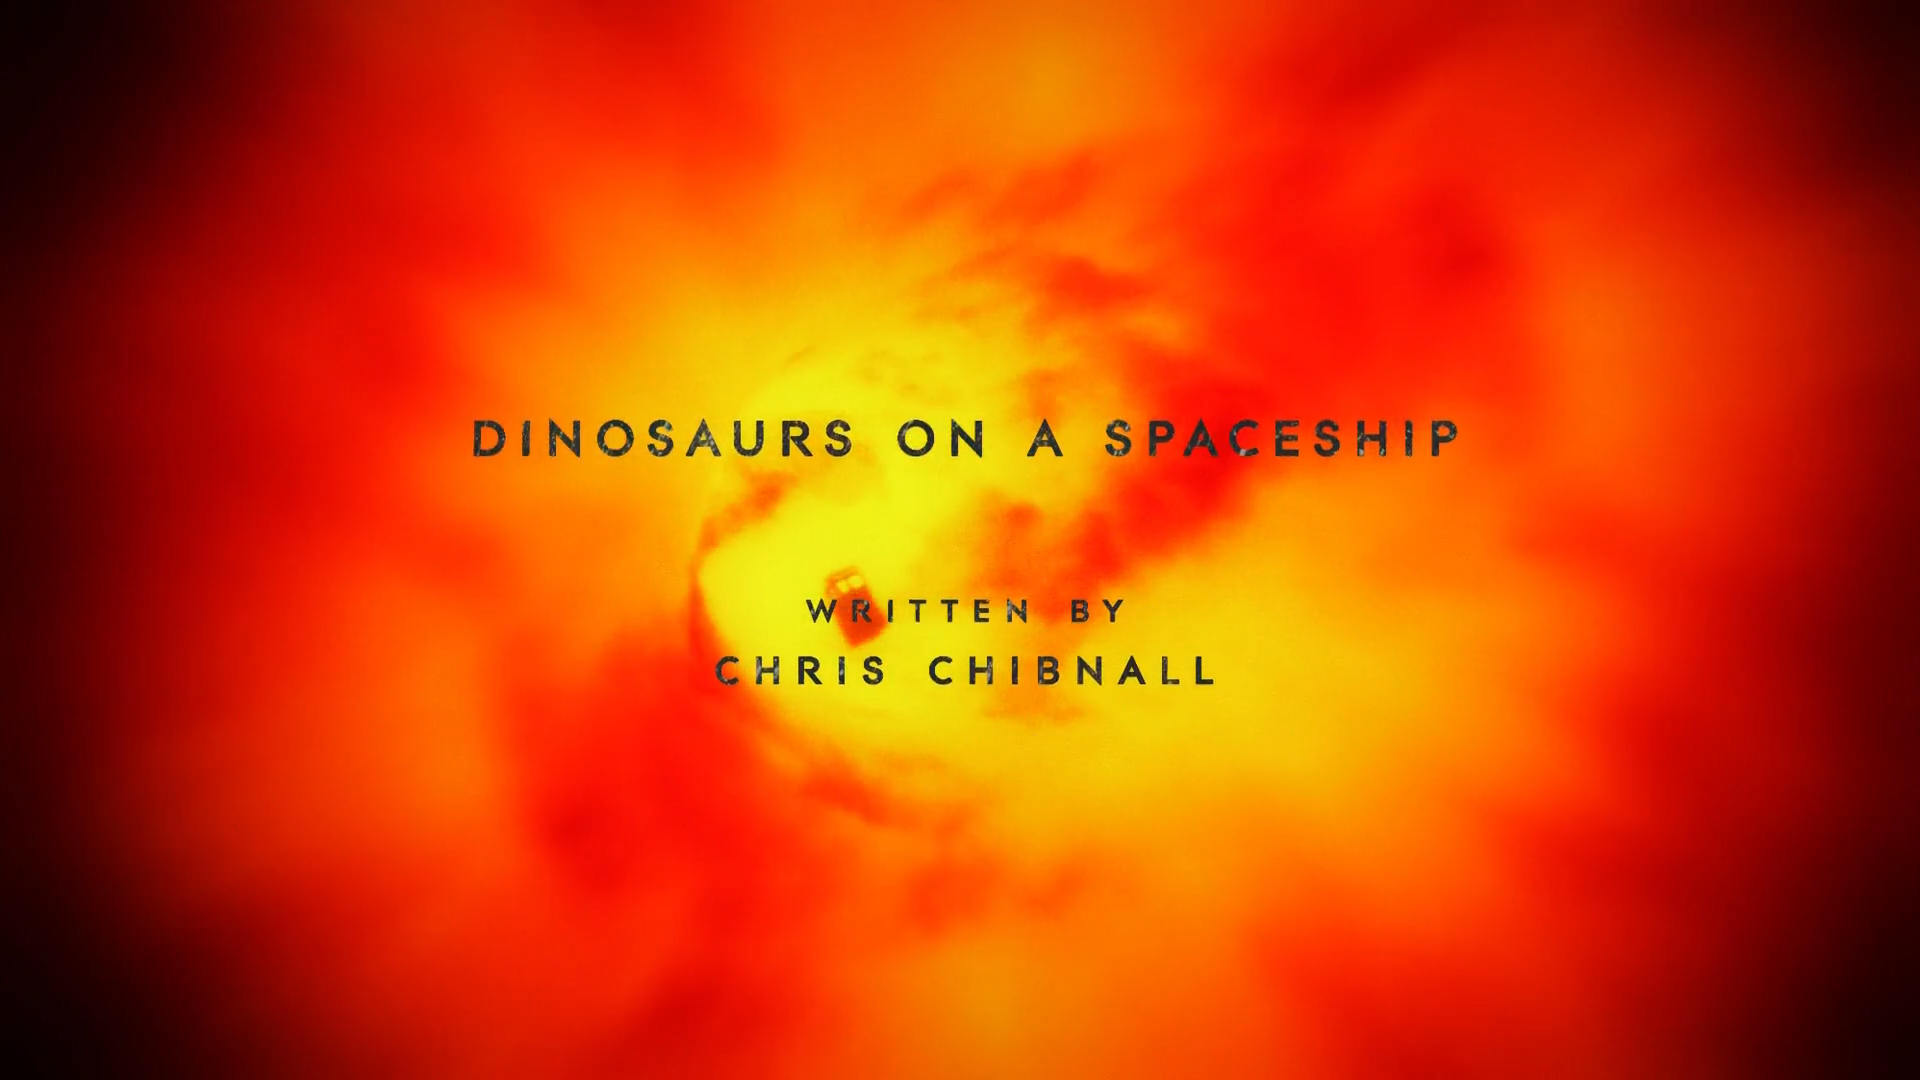 File:300px-Dinosaurs on a spaceship.jpg